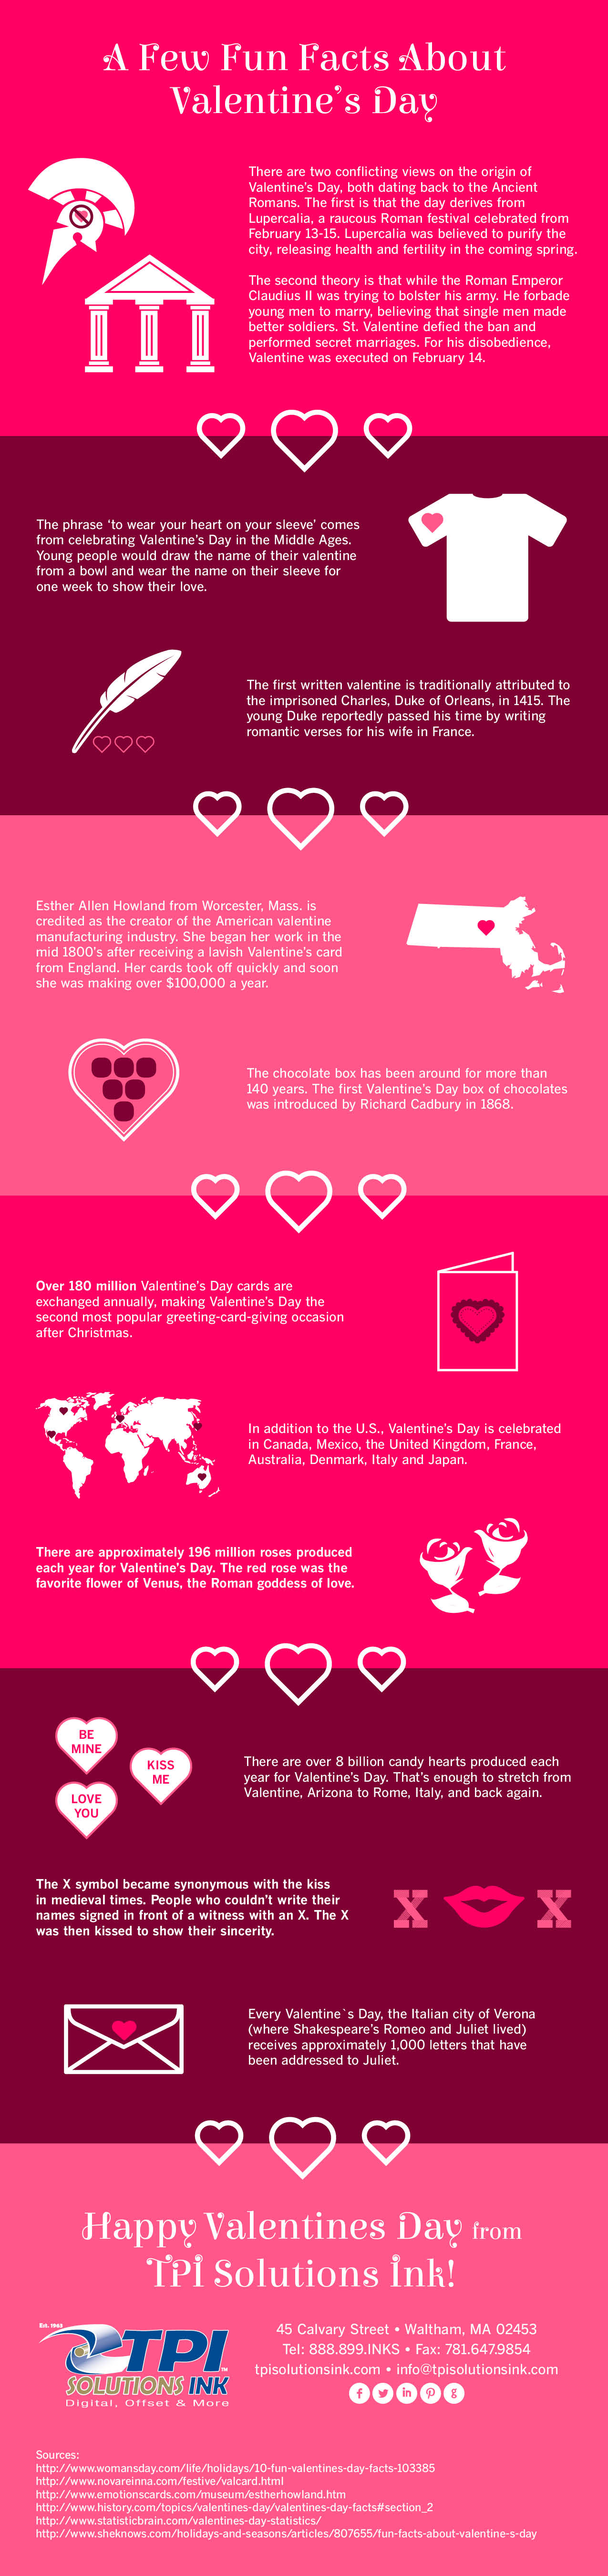 Valentine's Day Fun Facts Infographic by TPI Solutions Ink #infographic #valentines